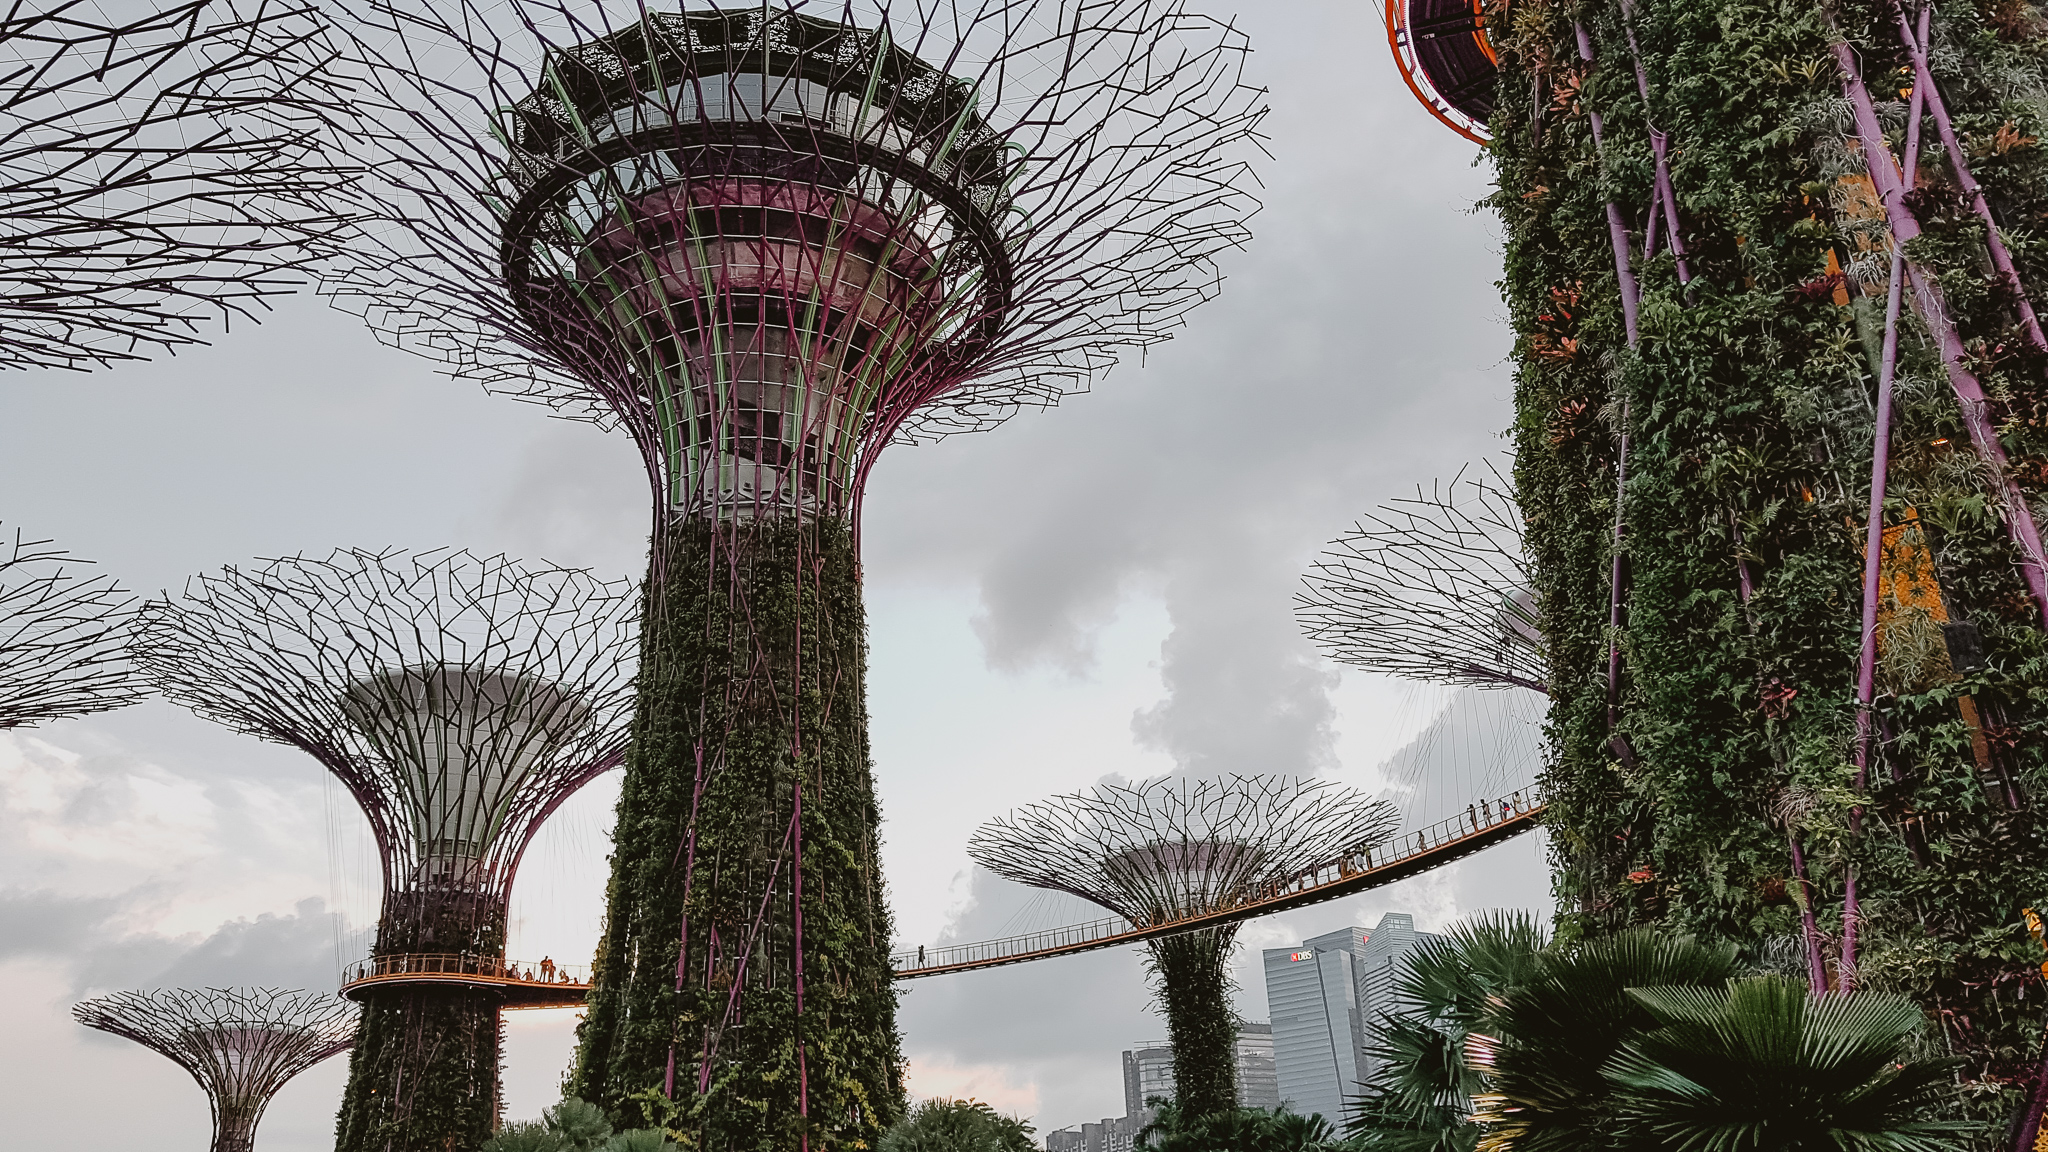 singapur garden by the bay ogrody